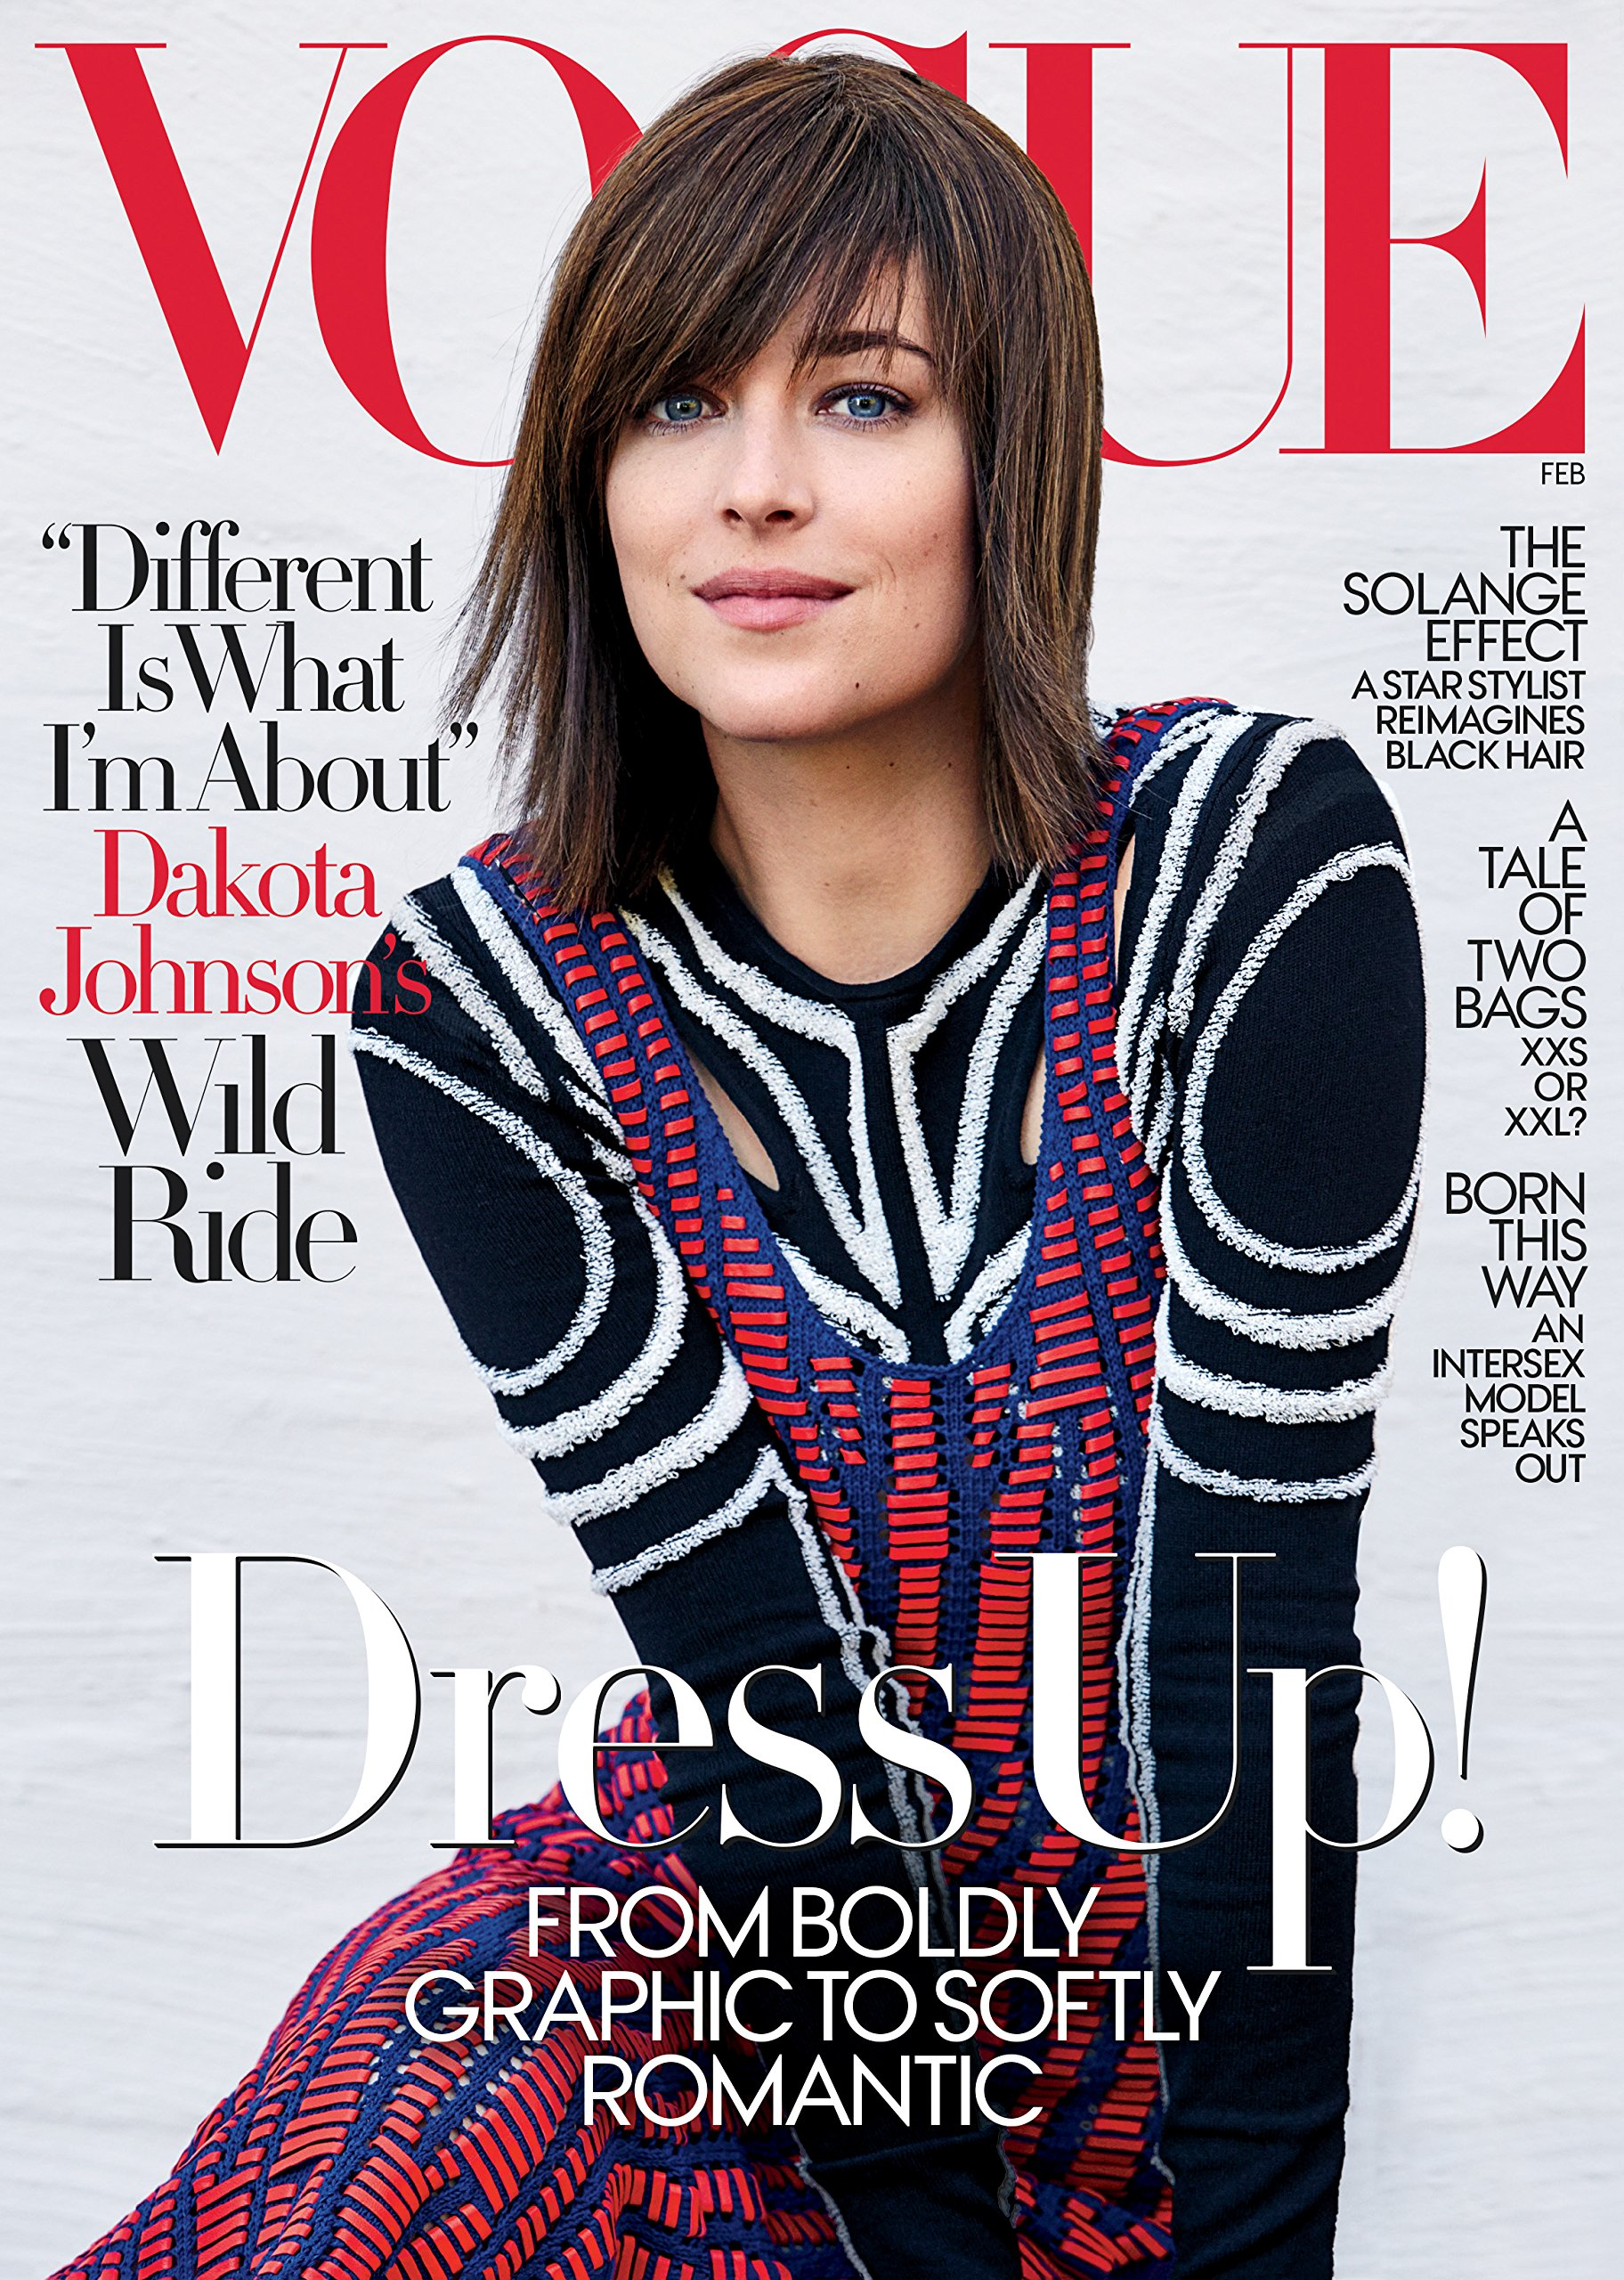 Vogue February 2017 Issue Single Issue Magazine – 2017 25f3fc22a